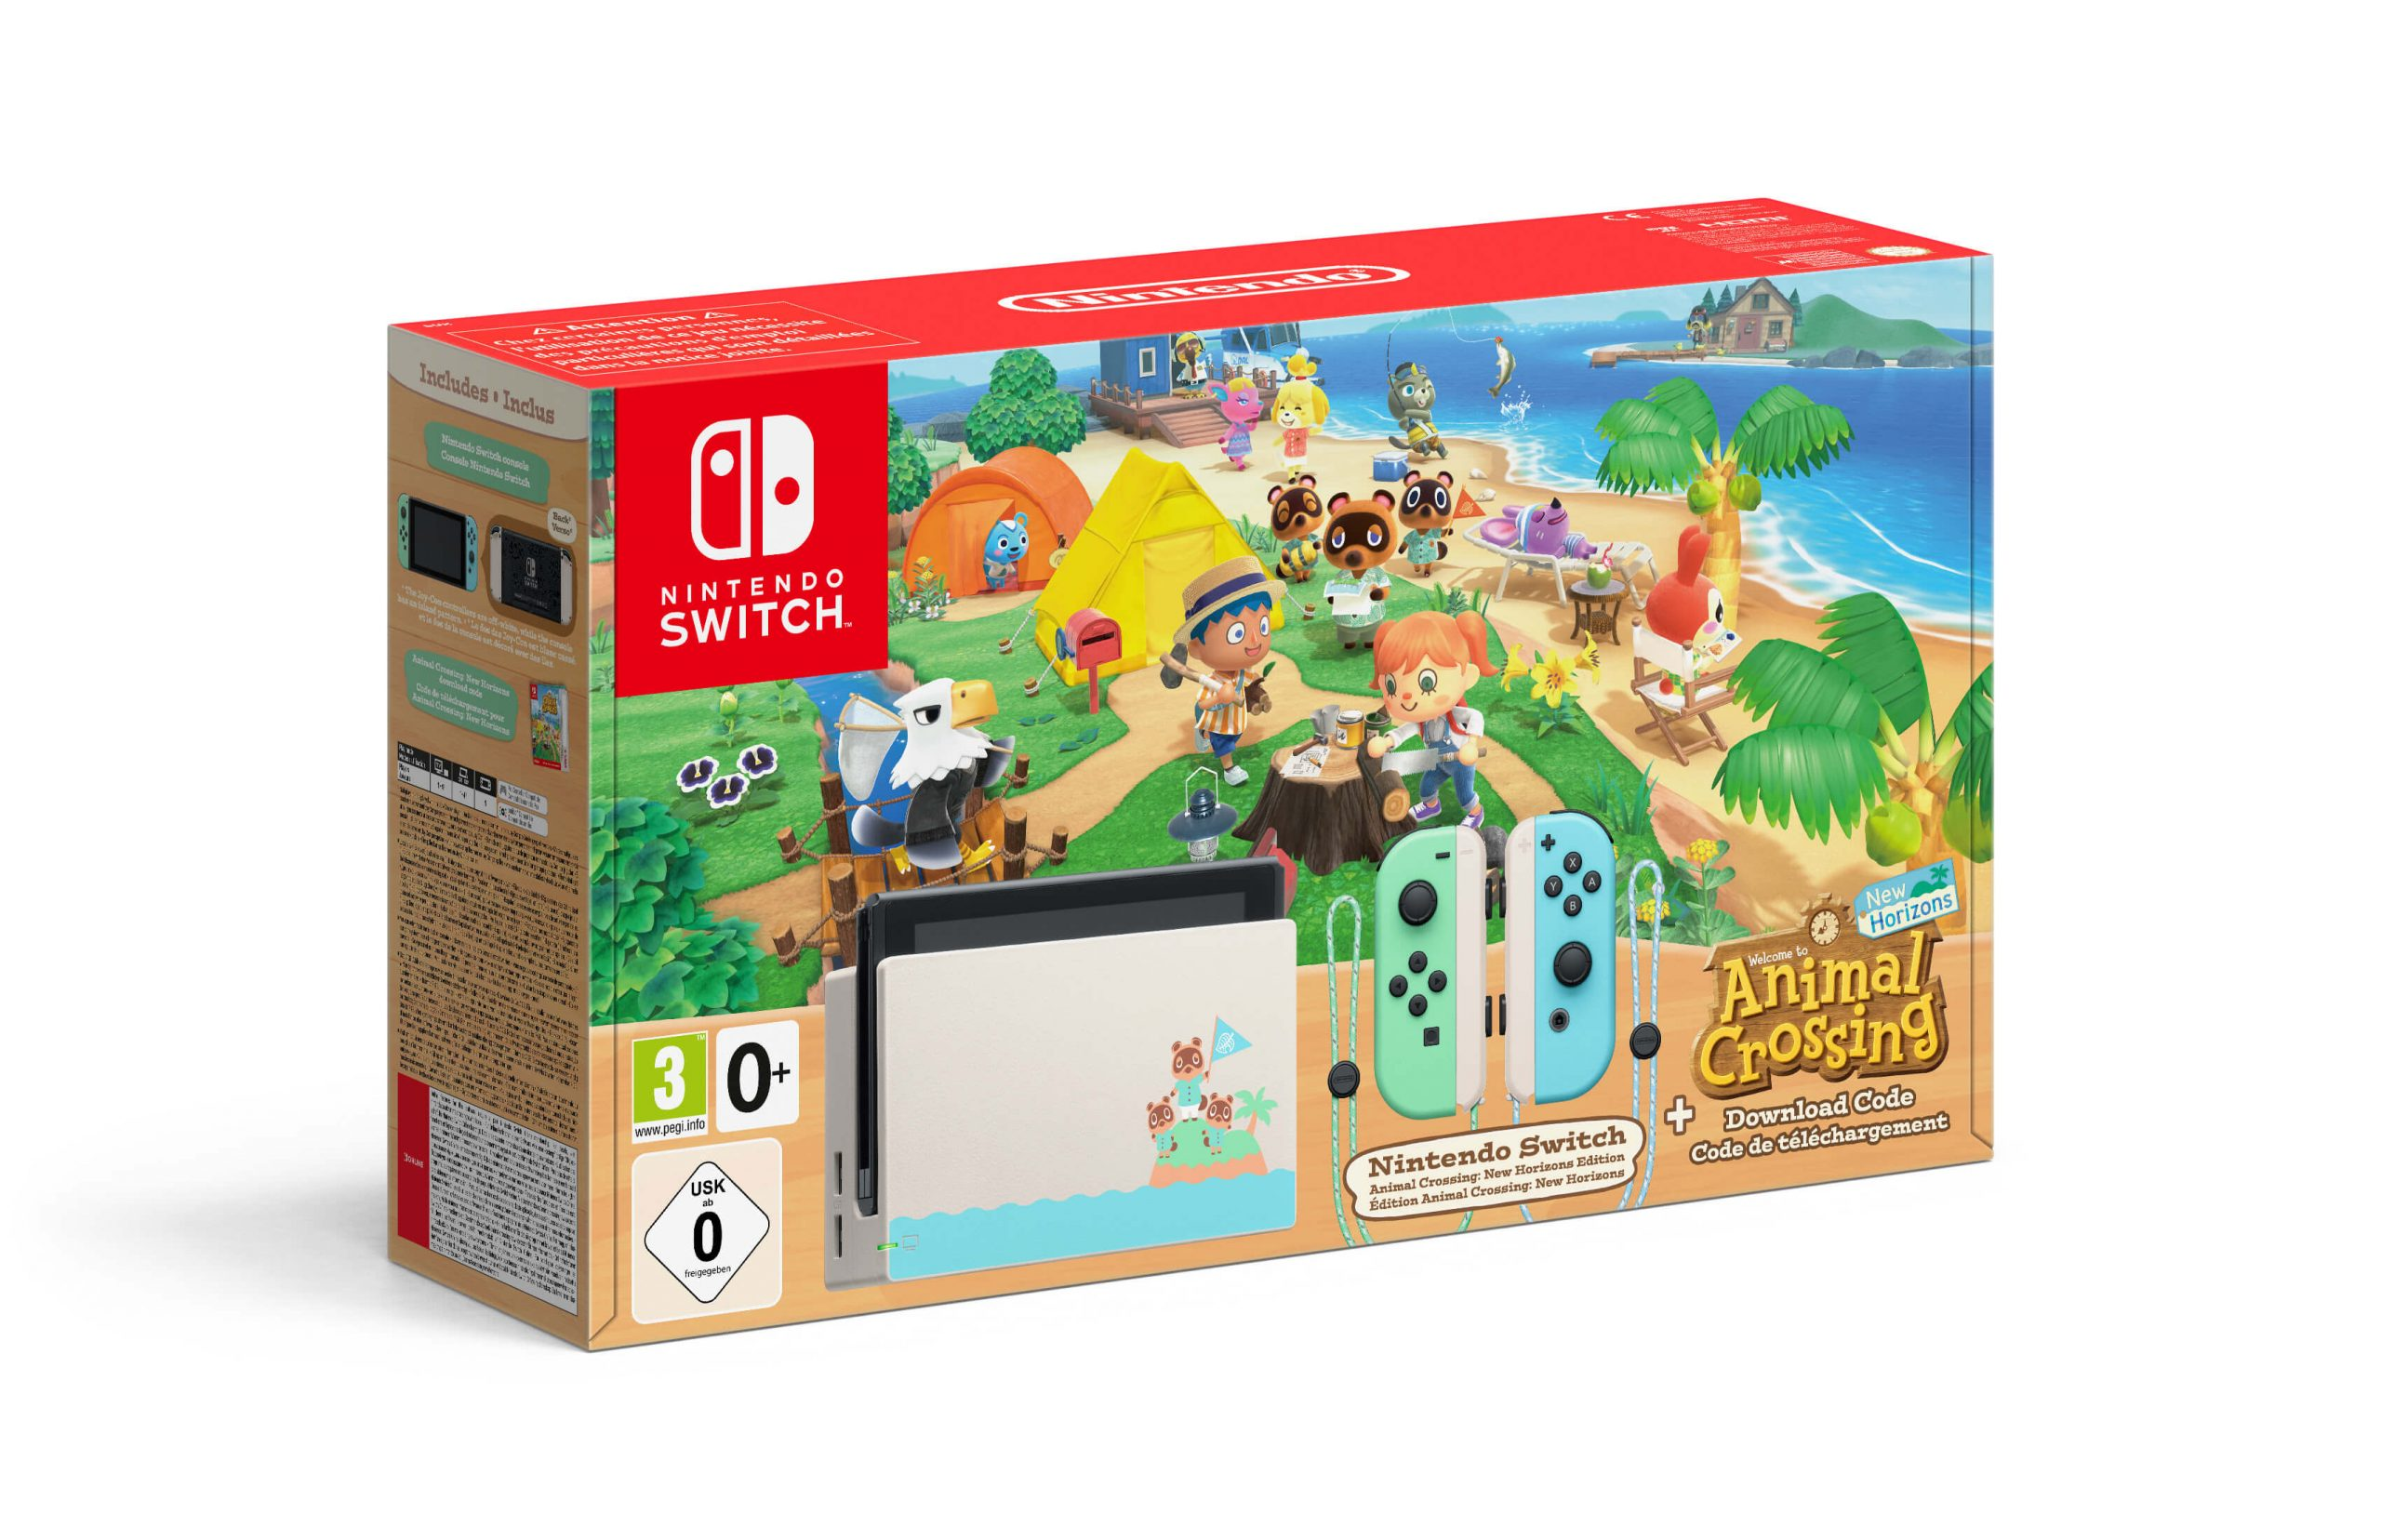 Pack edición Animal Crossing